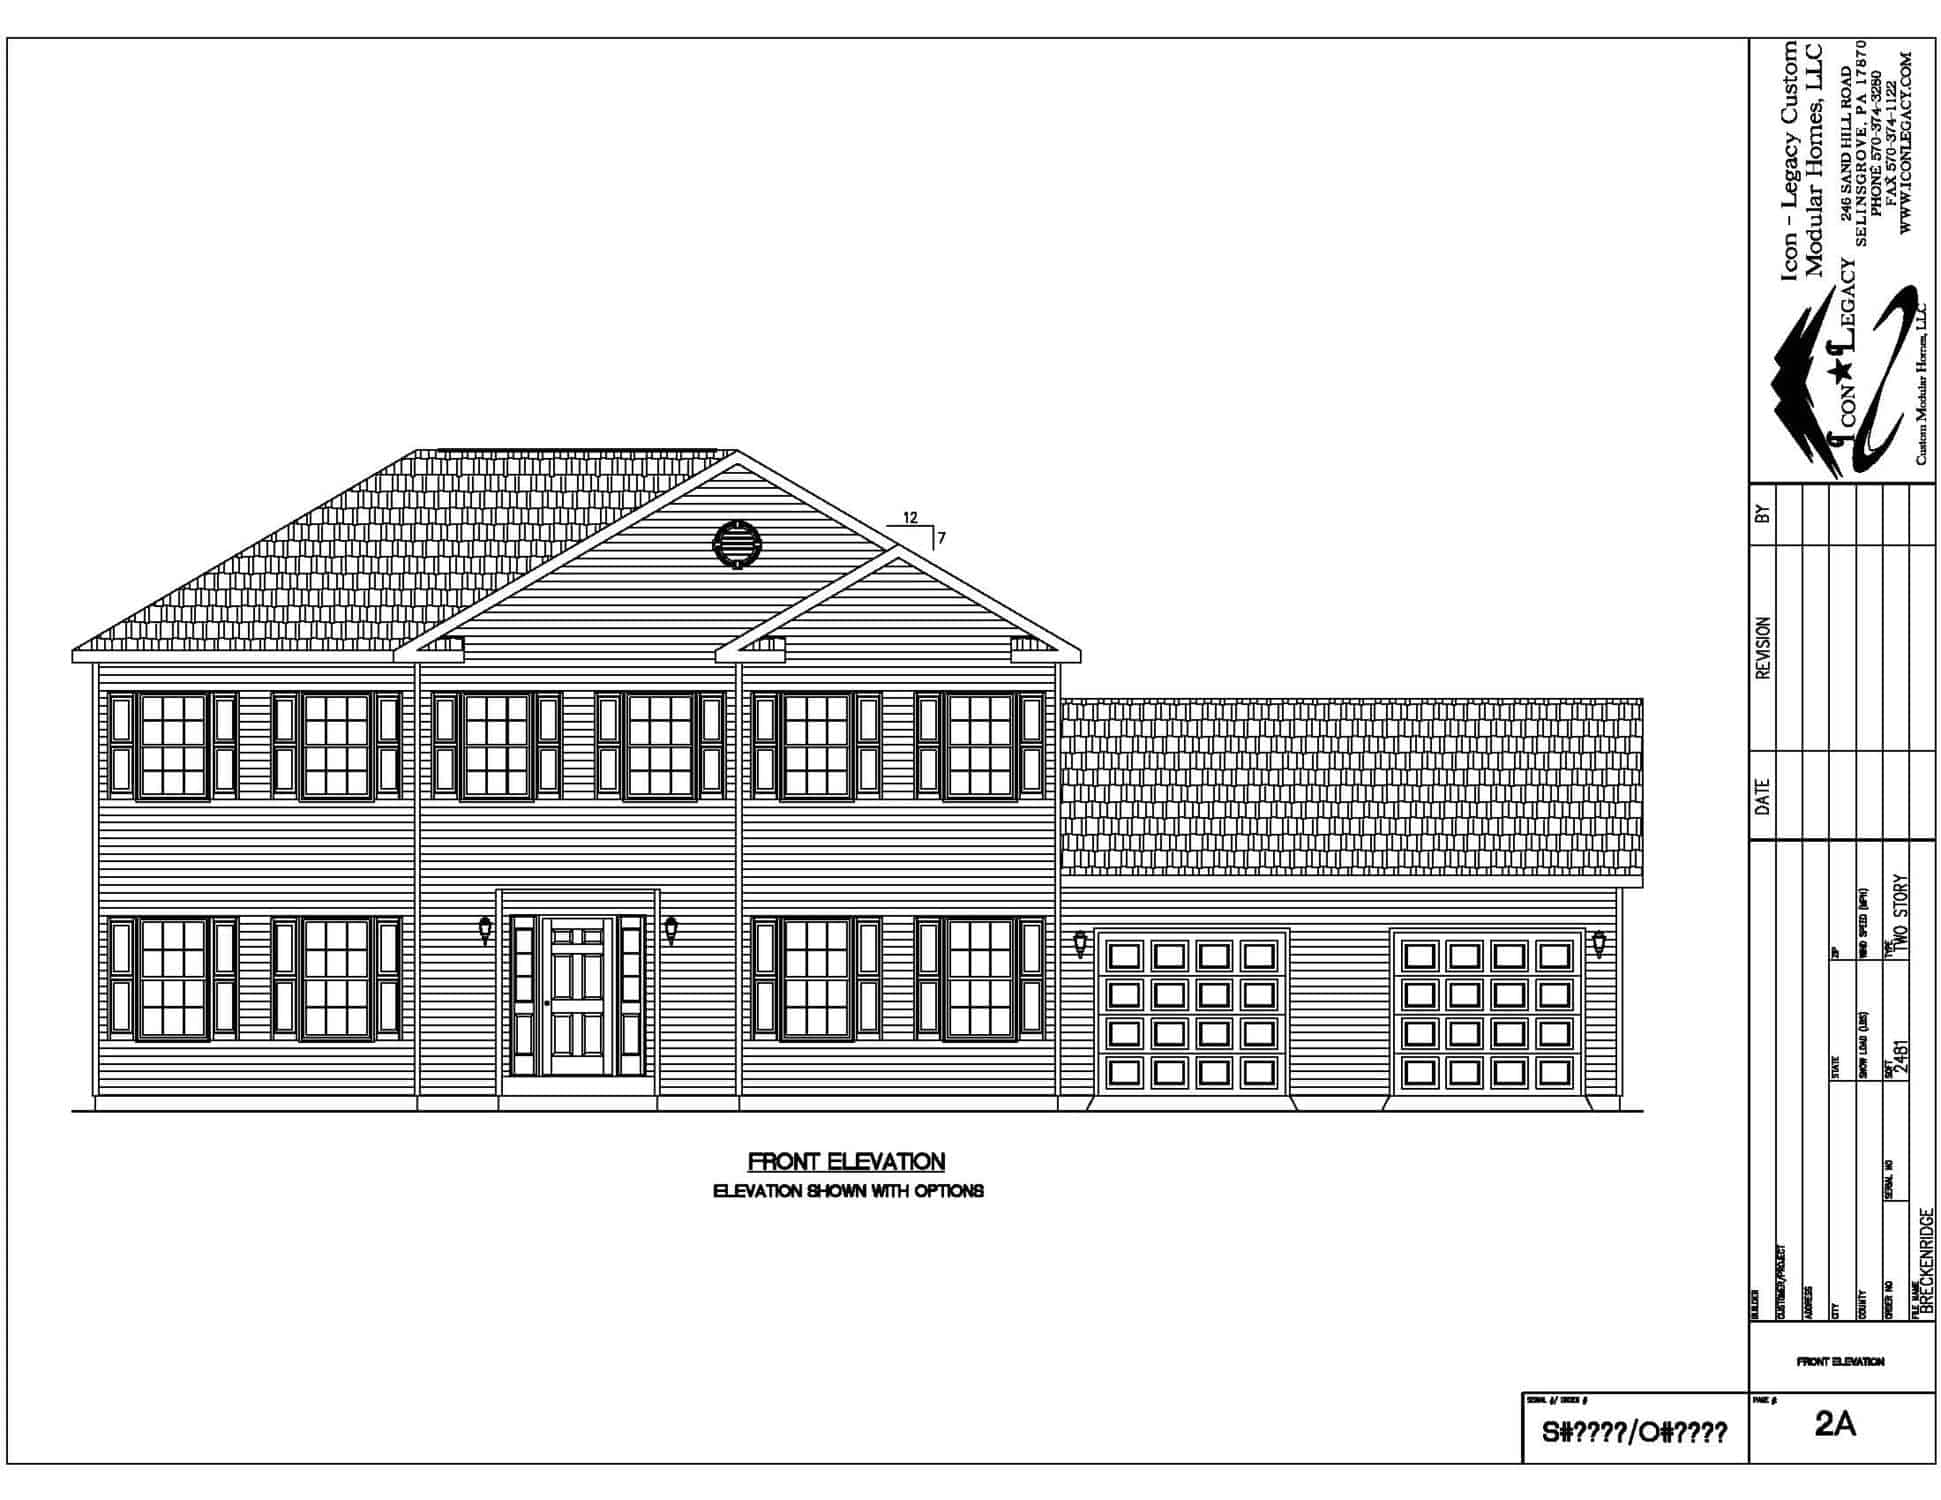 Nice modular home front elevation drawing